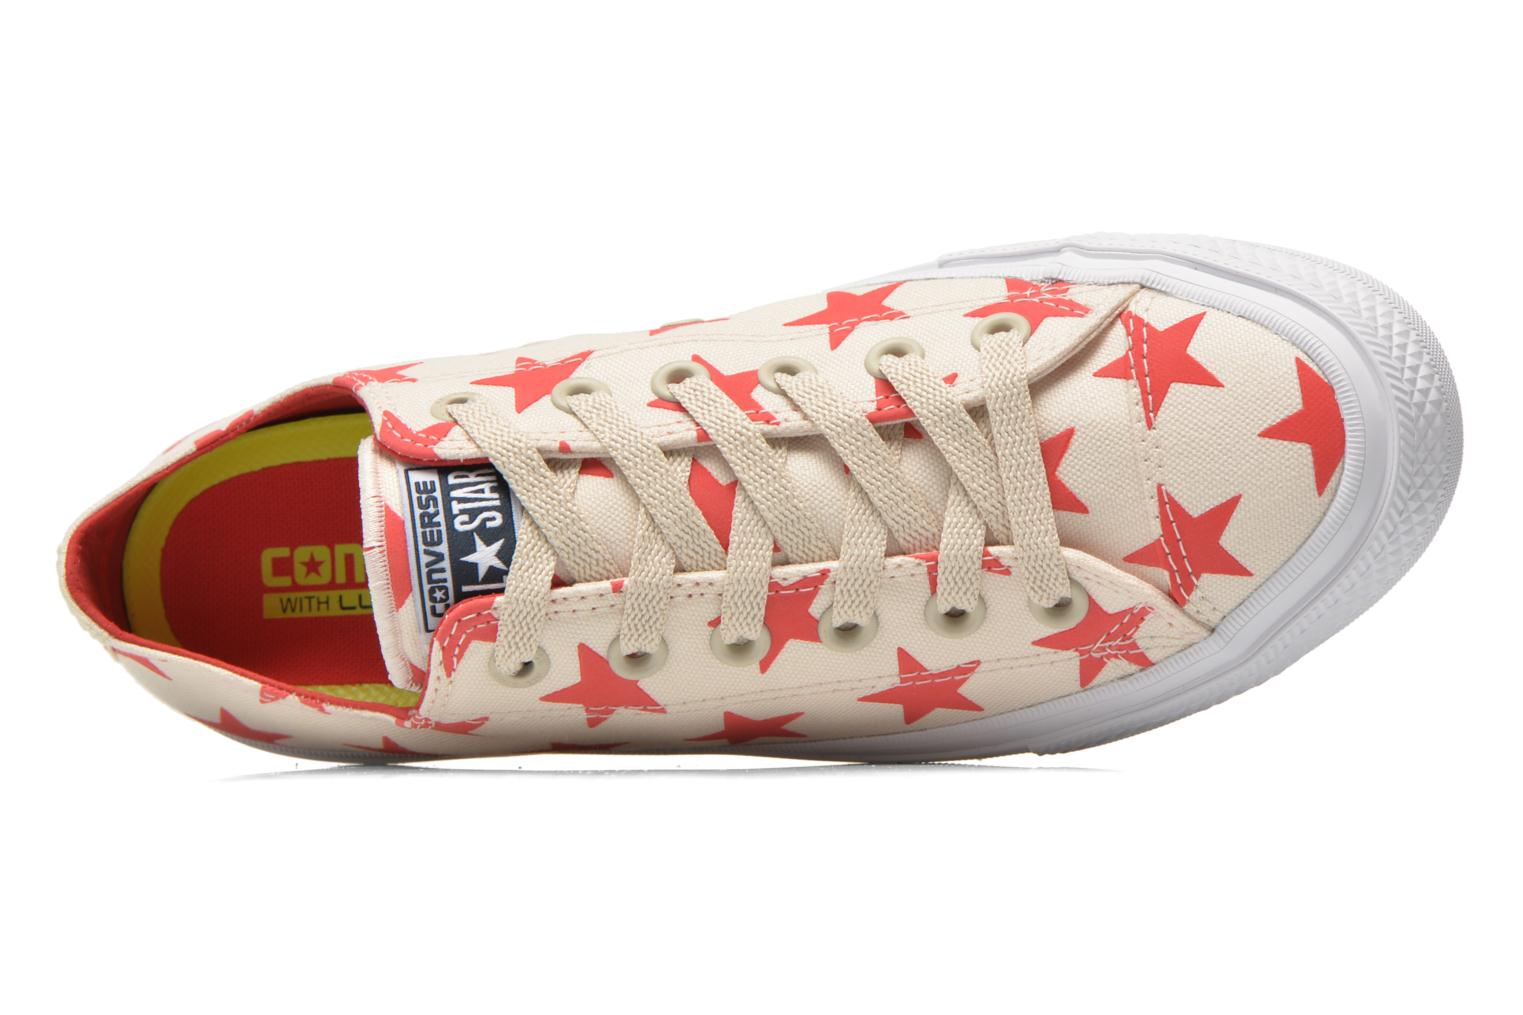 Chuck Taylor All Star II Ox M Parchment-Navy-White